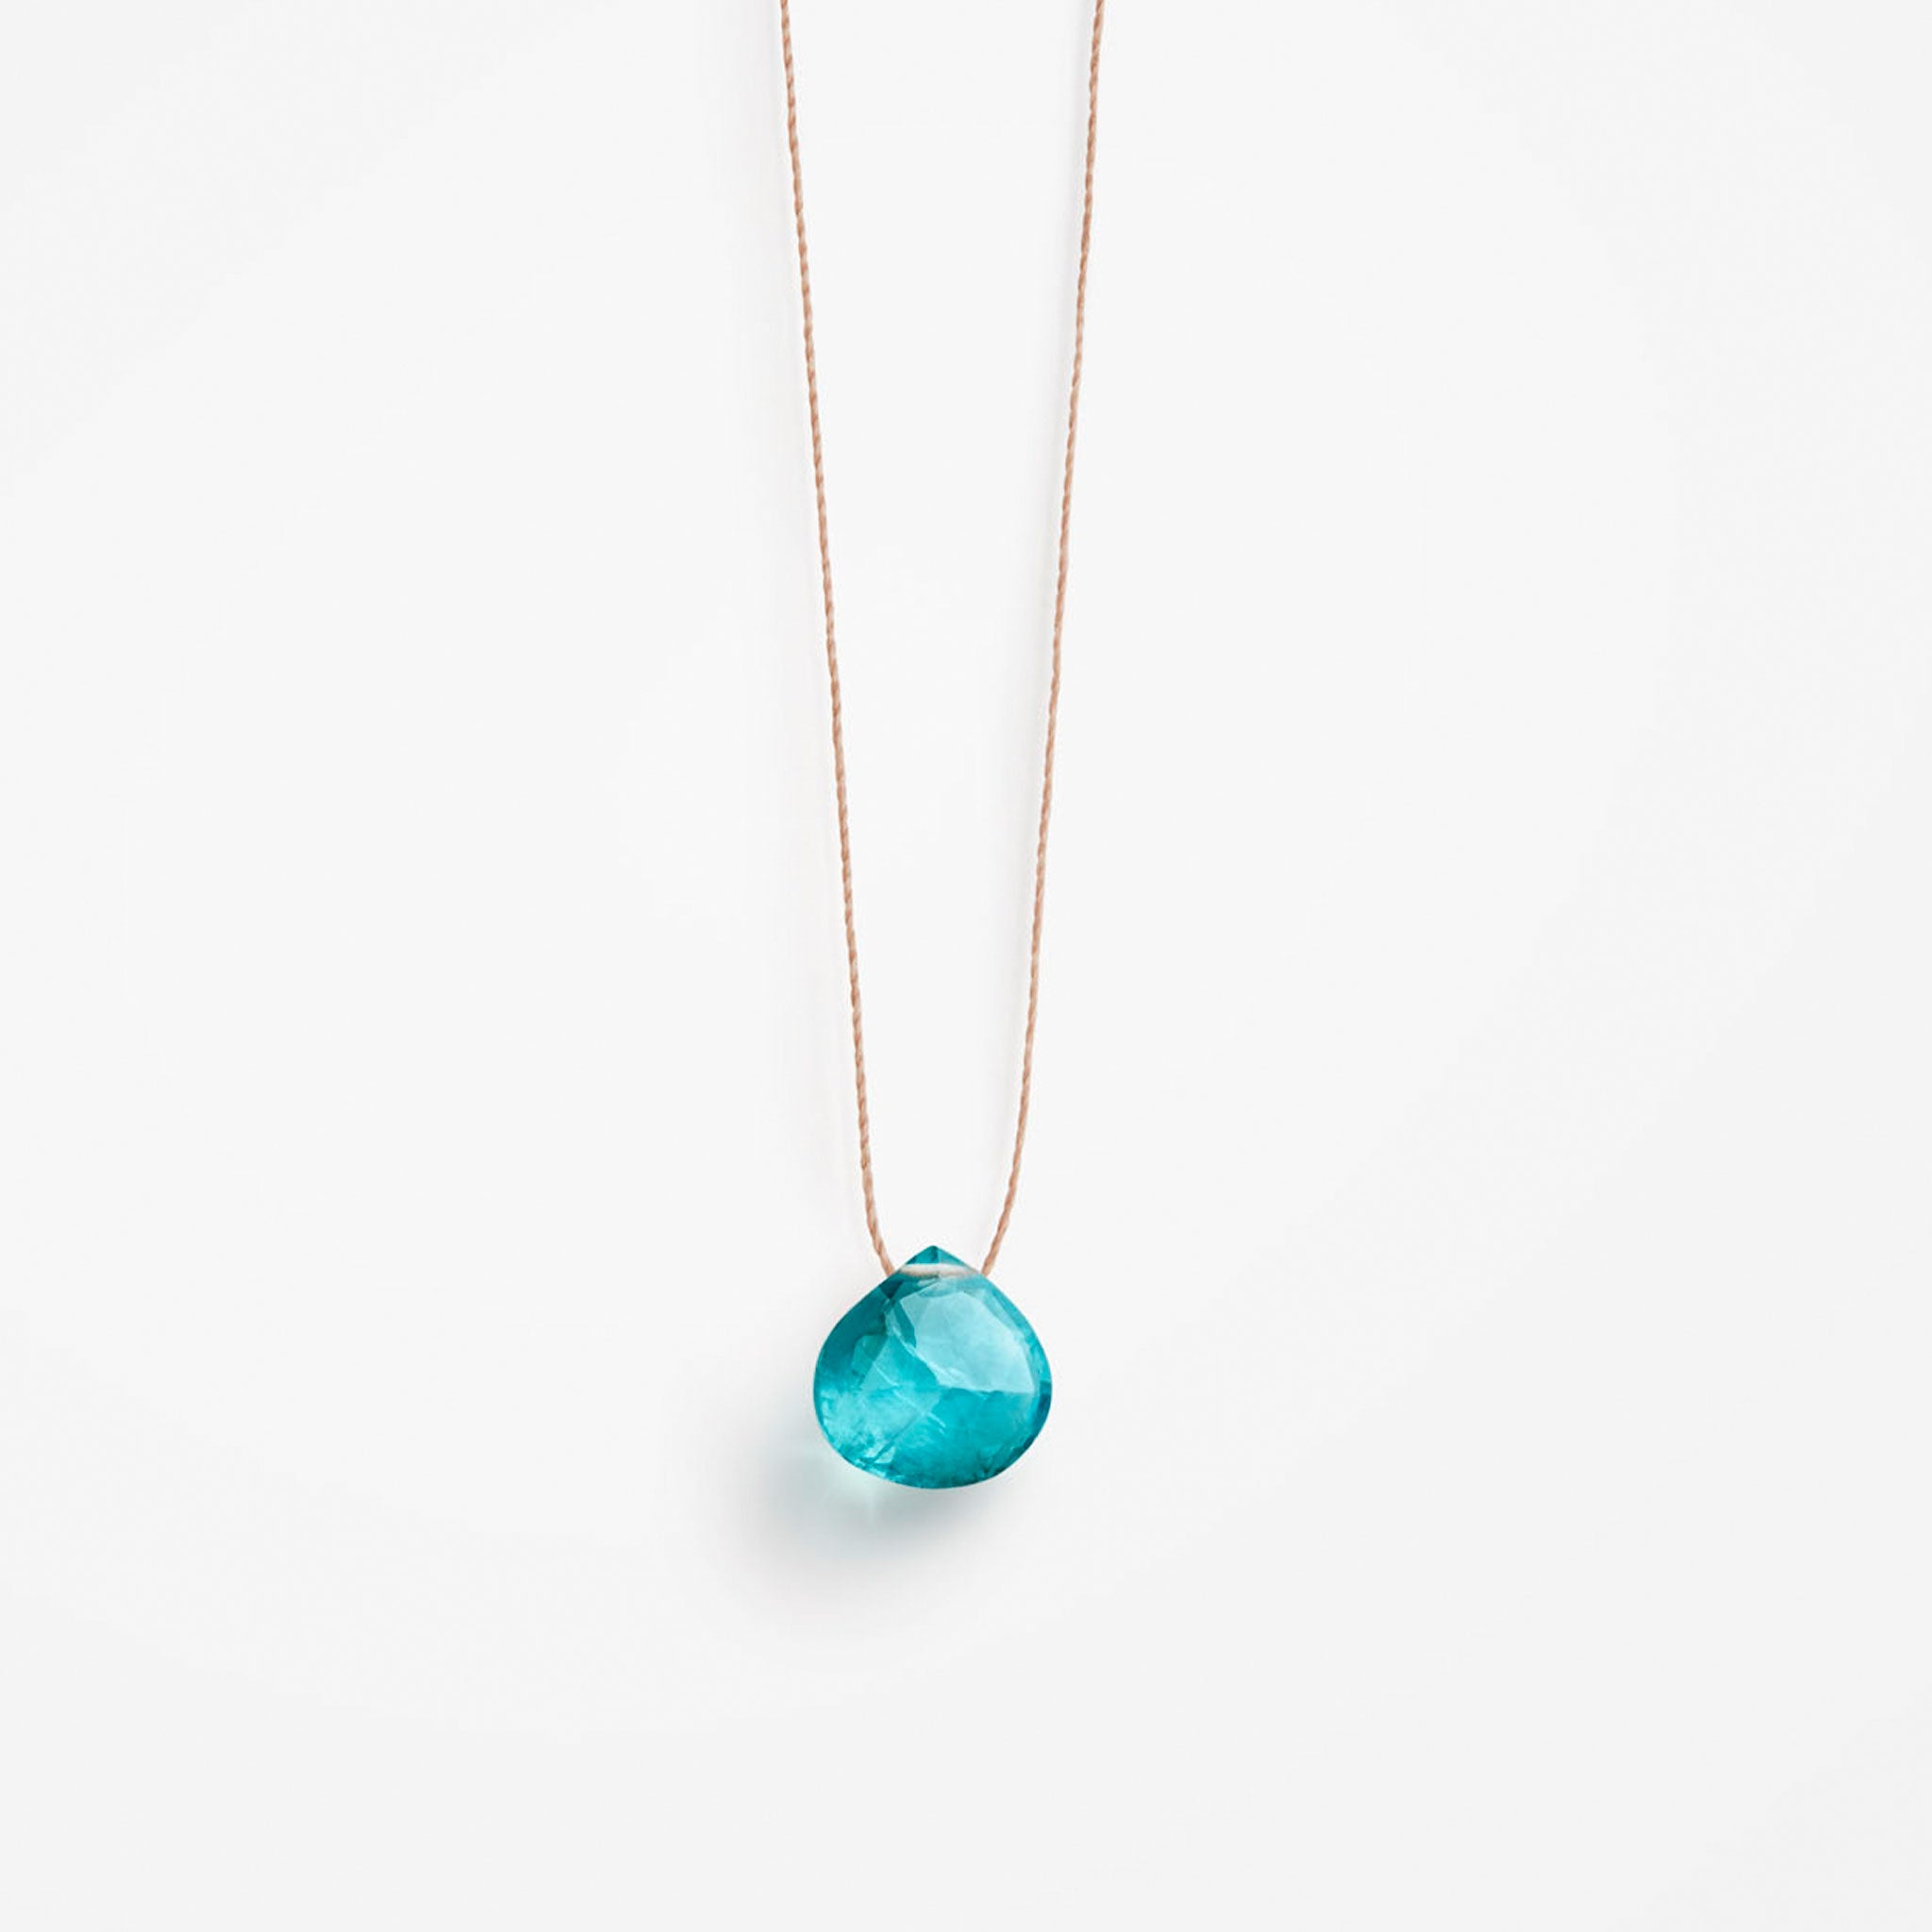 Modern & understated, a solo blue Apatite Quartz gemstone in our signature faceted shape slides on a delicate & minimalist fine cord necklace. Wanderlust Life fine cord necklaces are handmade in the UK.